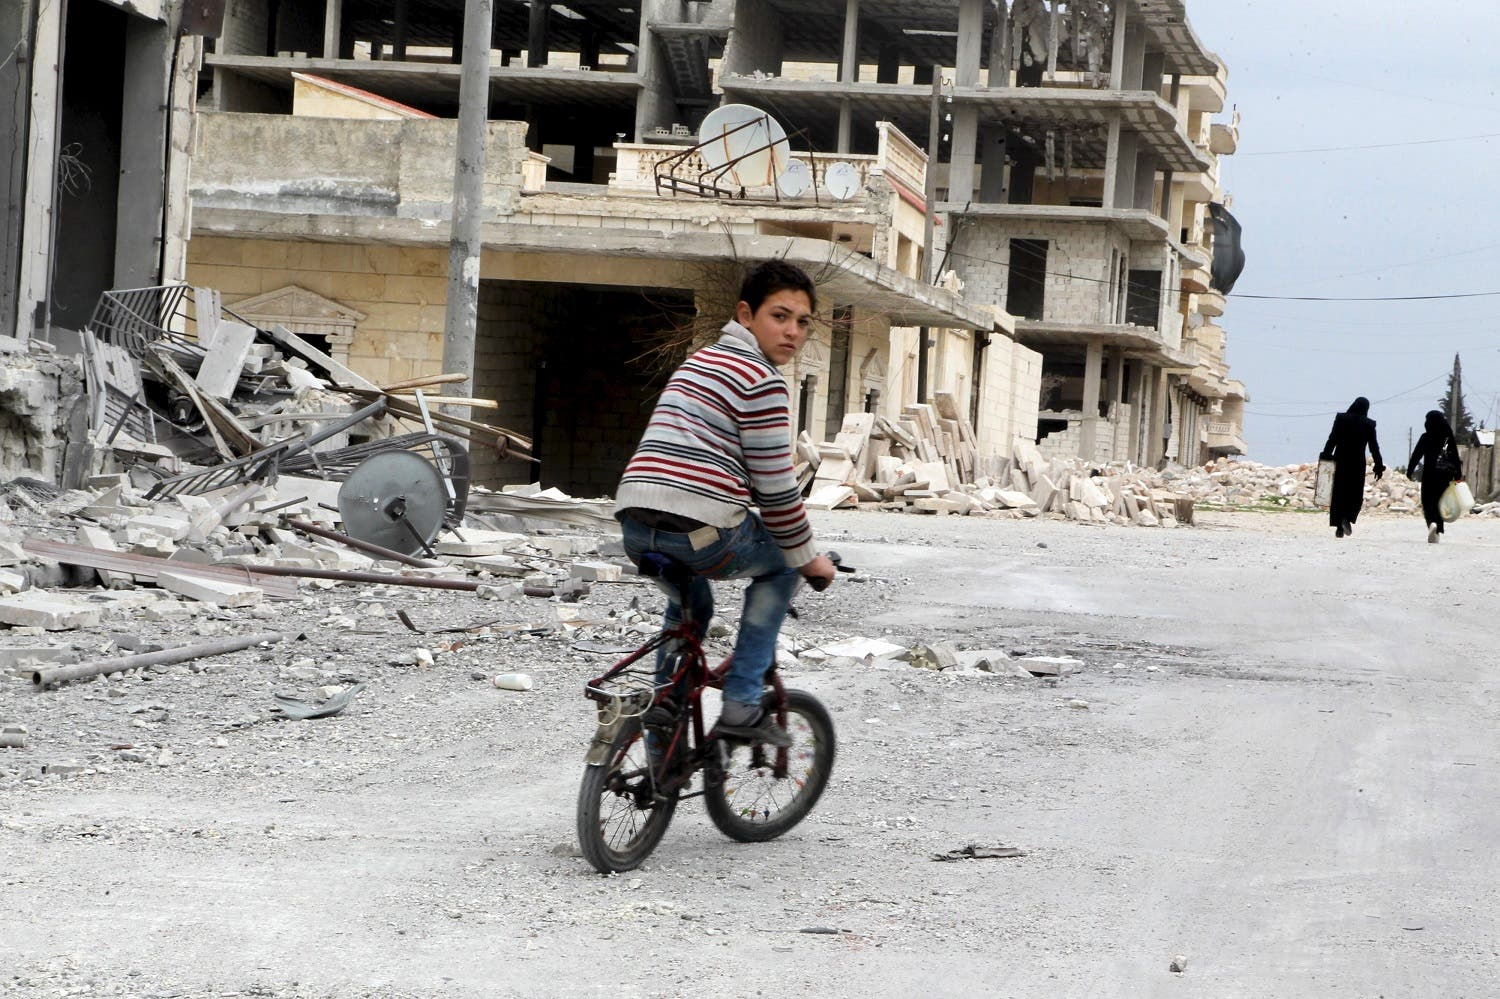 A boy rides a bicycle near damage in Kafr Hamra village, northern Aleppo countryside. (Reuters)